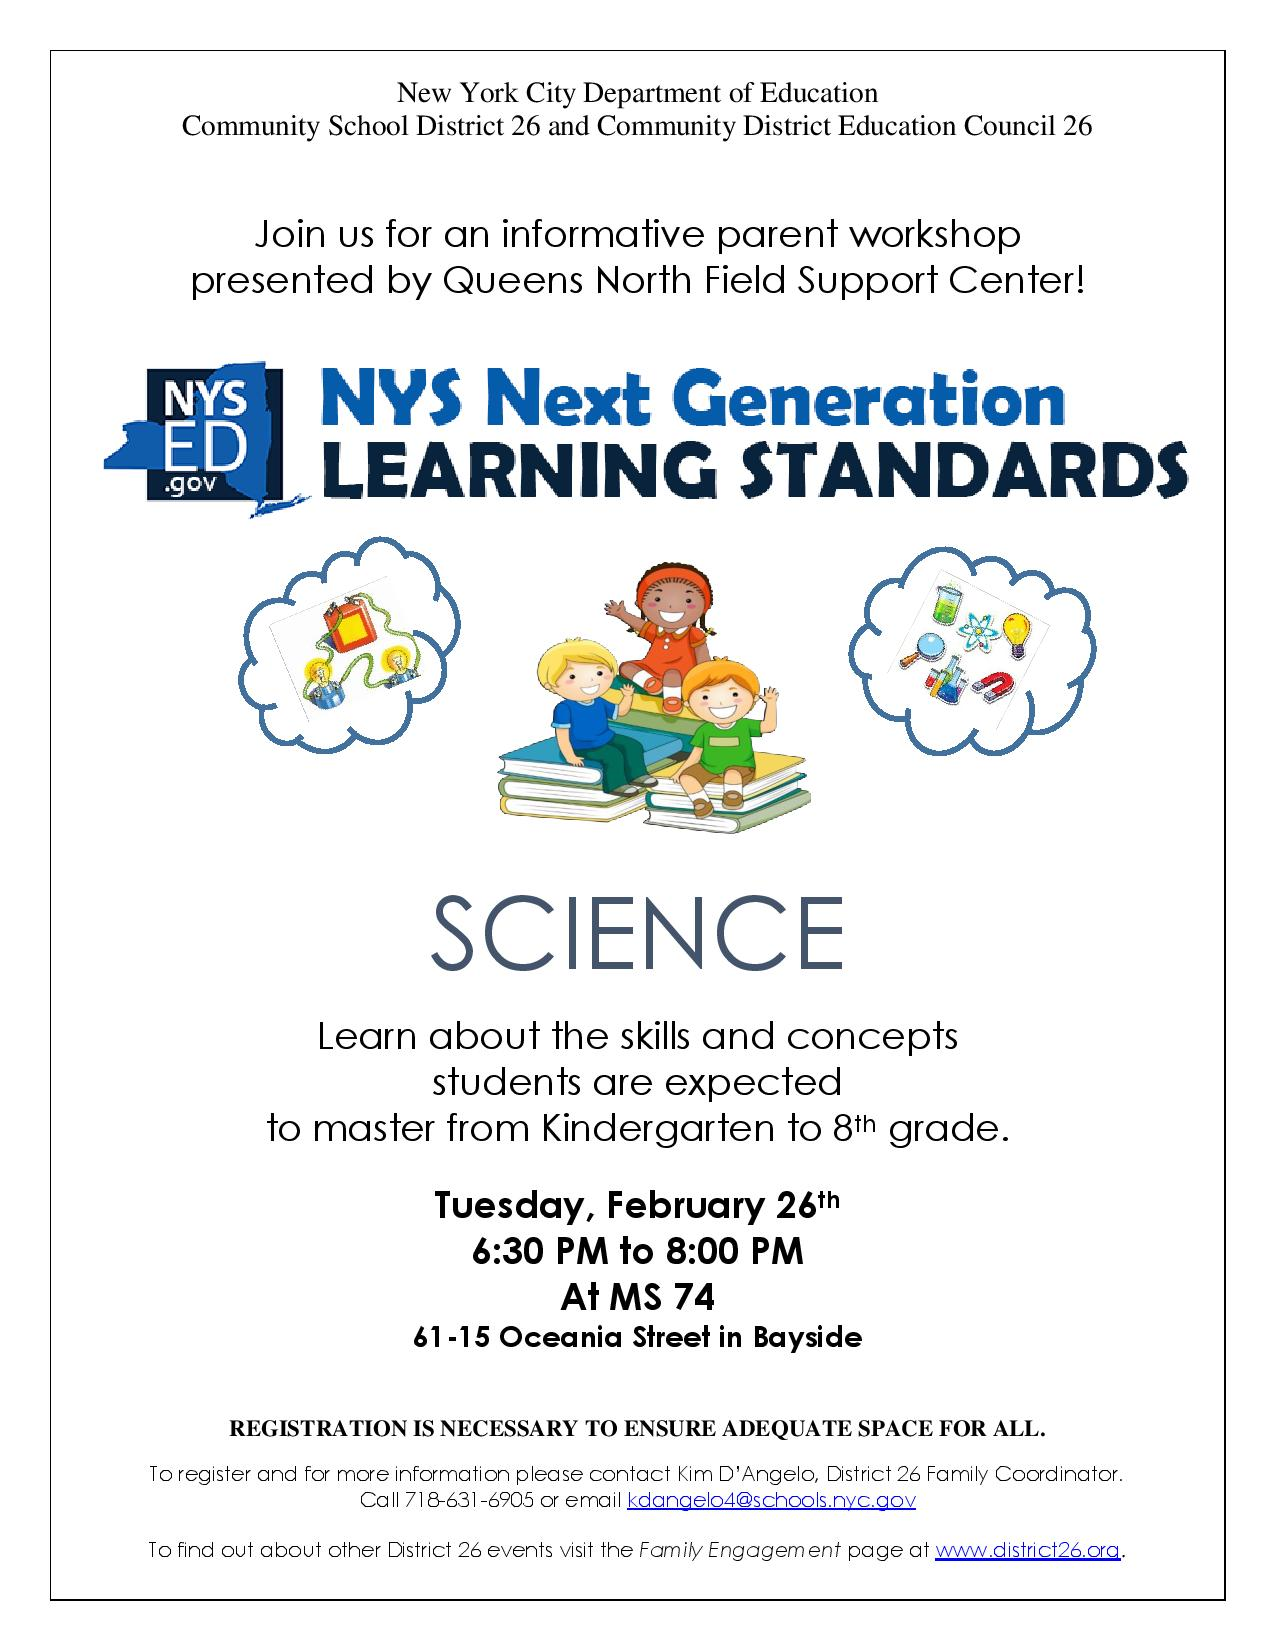 02/26 NYS Next Generation Learning Standards - P.S. 188Q ...